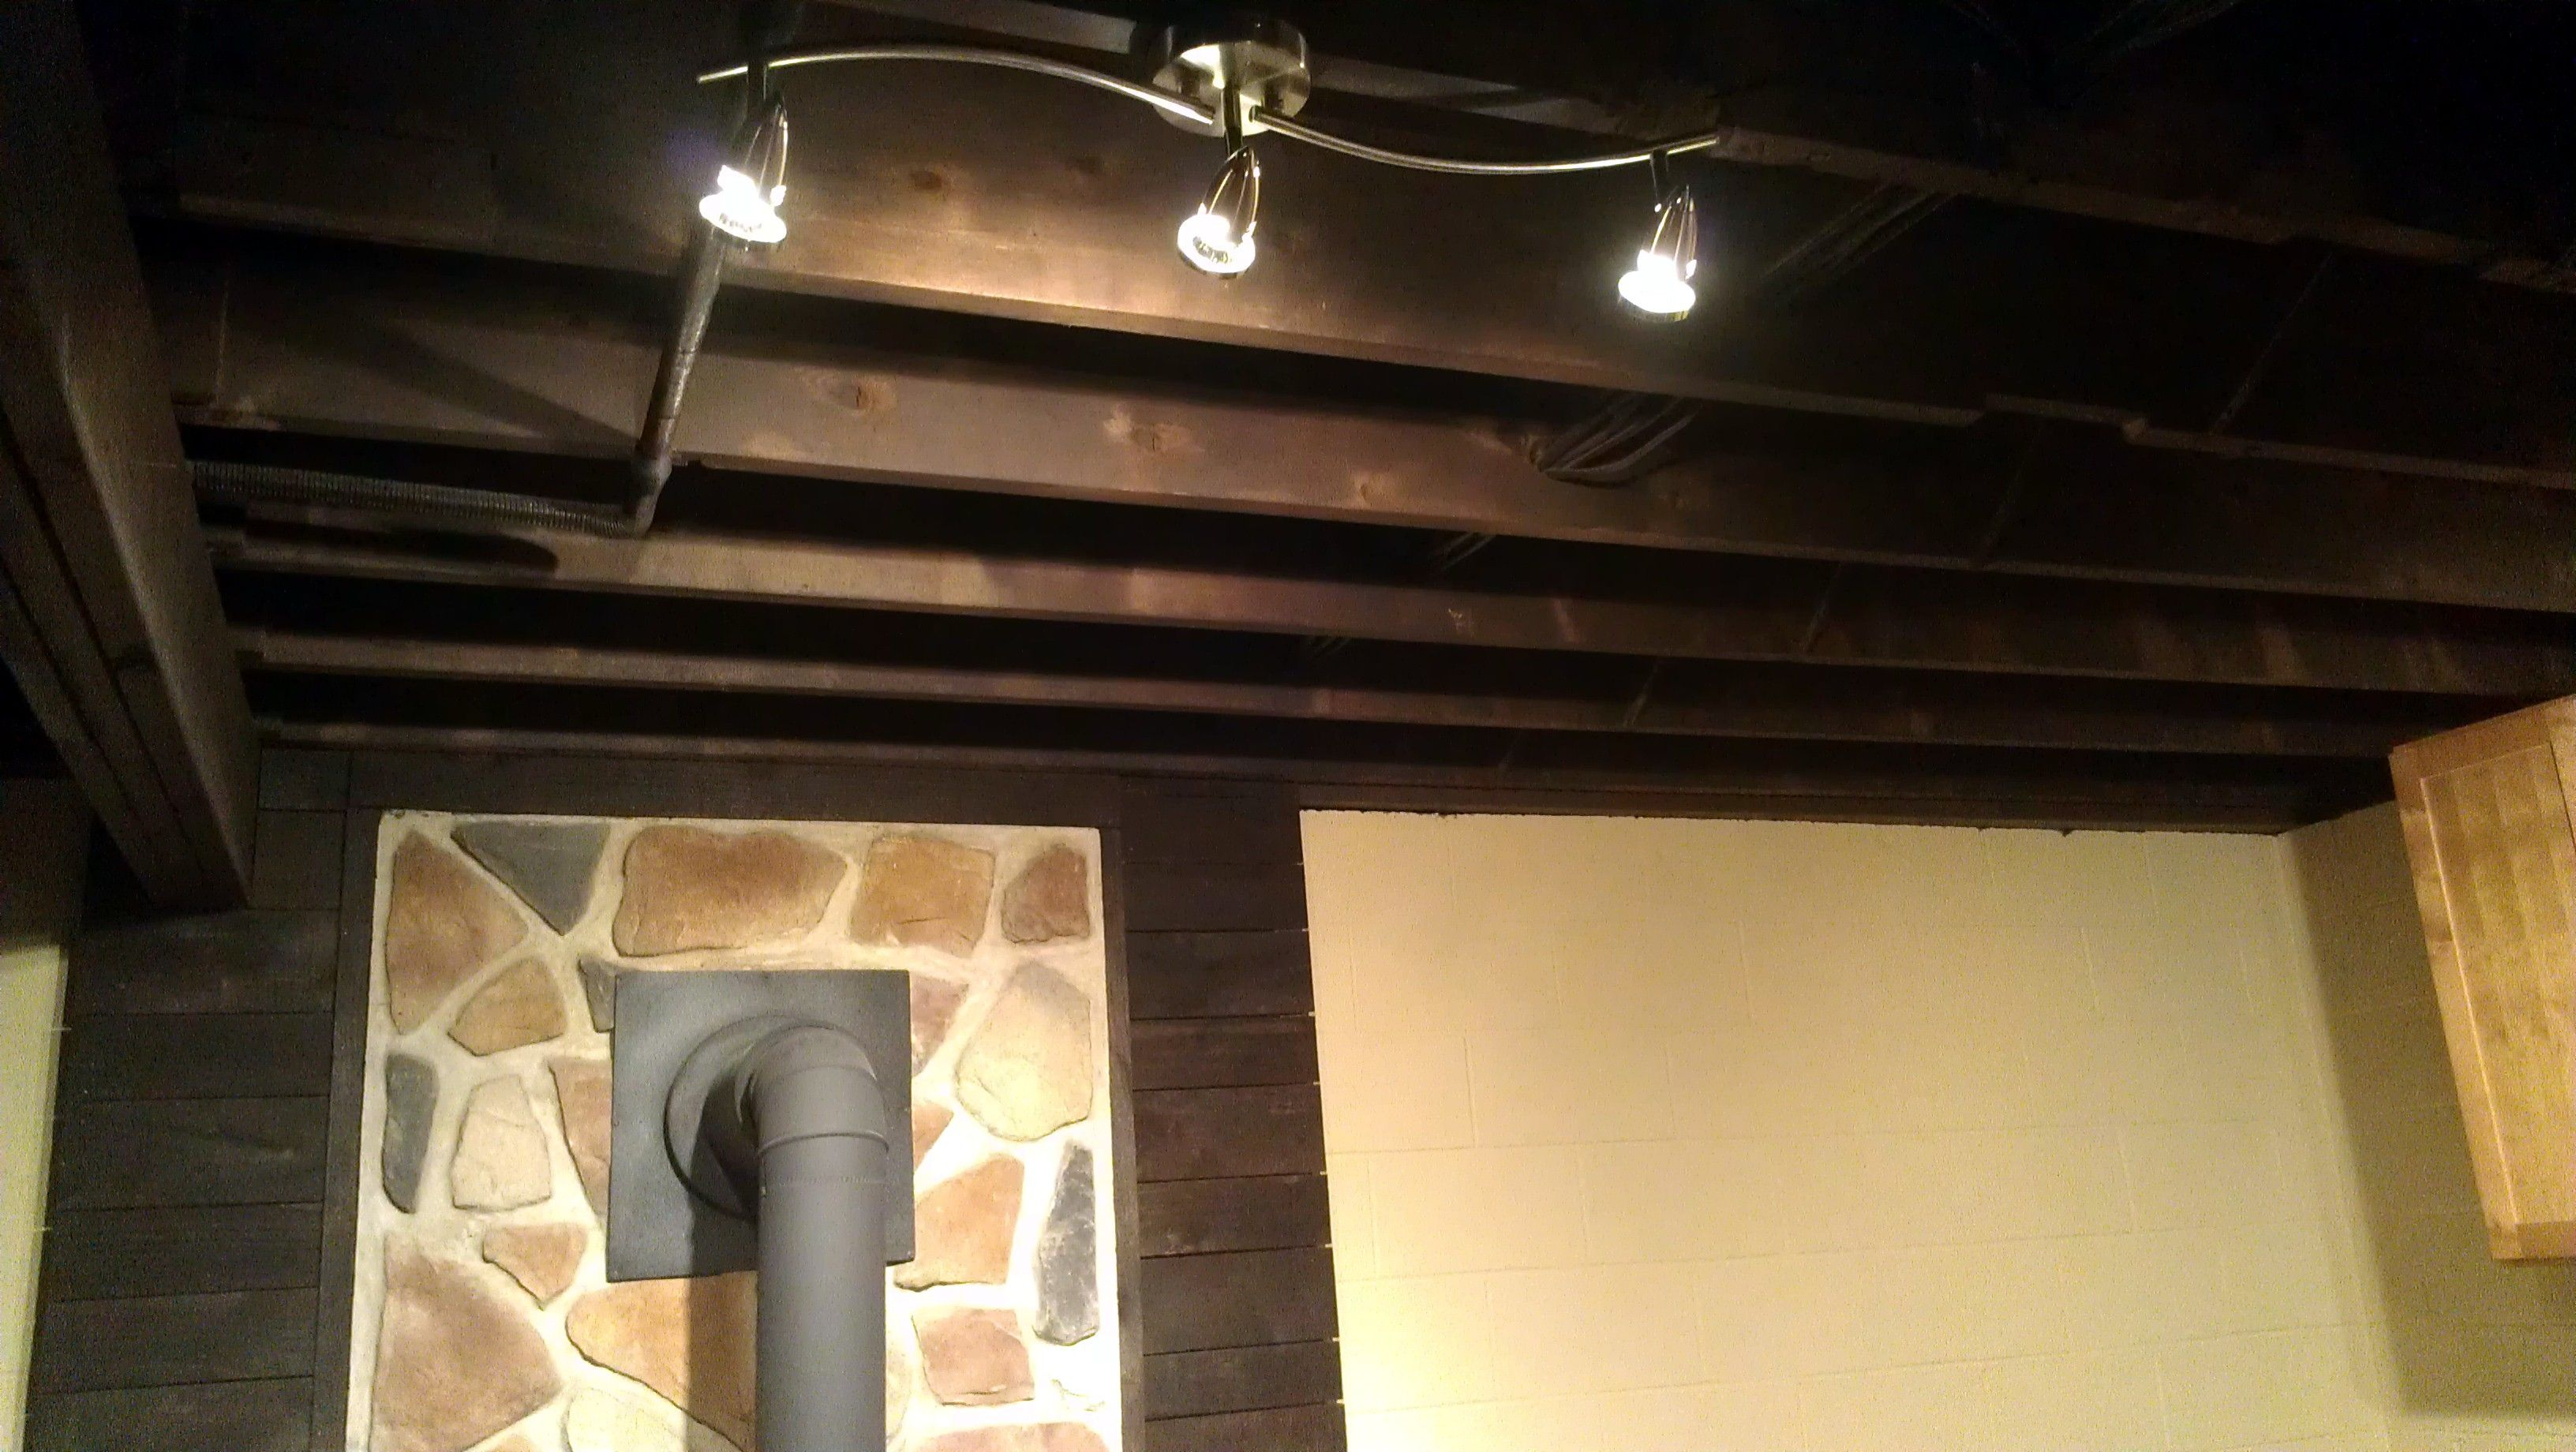 BASEMENT Reno You Can Paint Ceilings DITCH Those Drop We Used